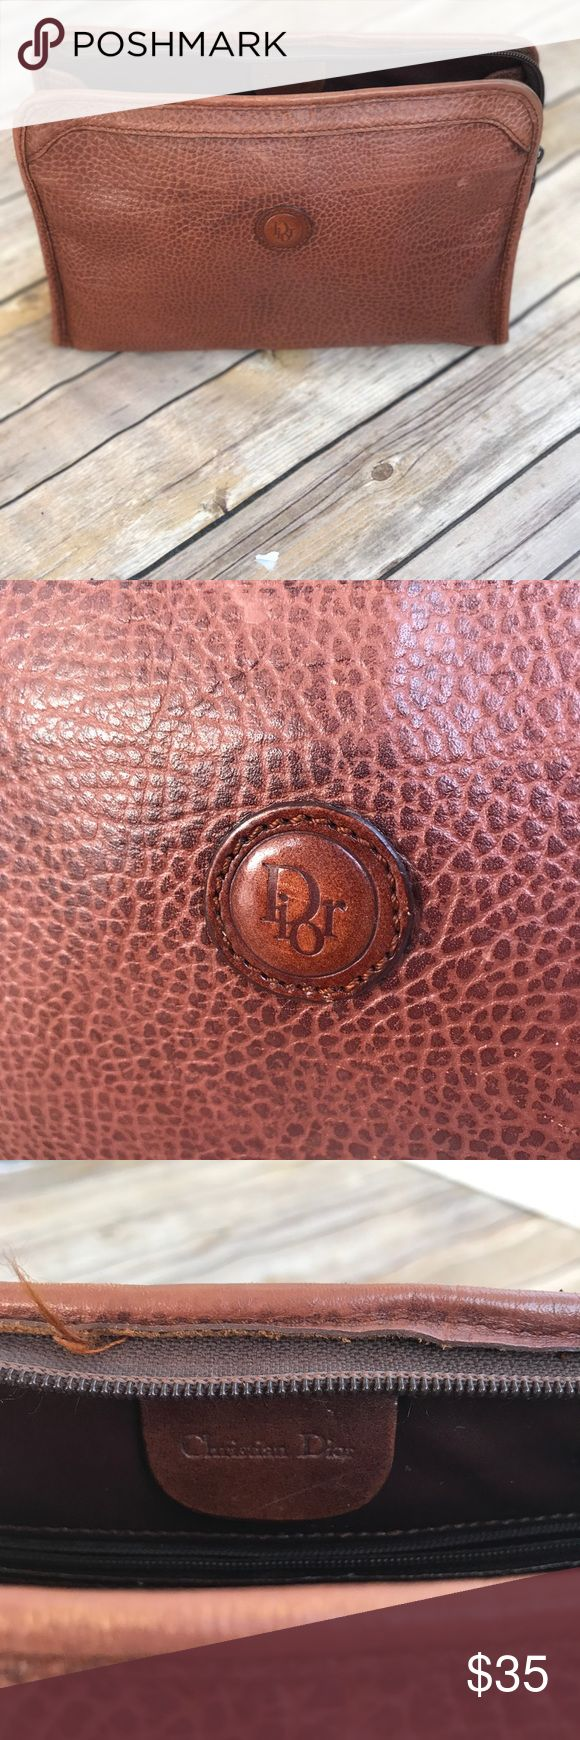 Vintage Christian Dior Cosmetic Bag (With images) Dior